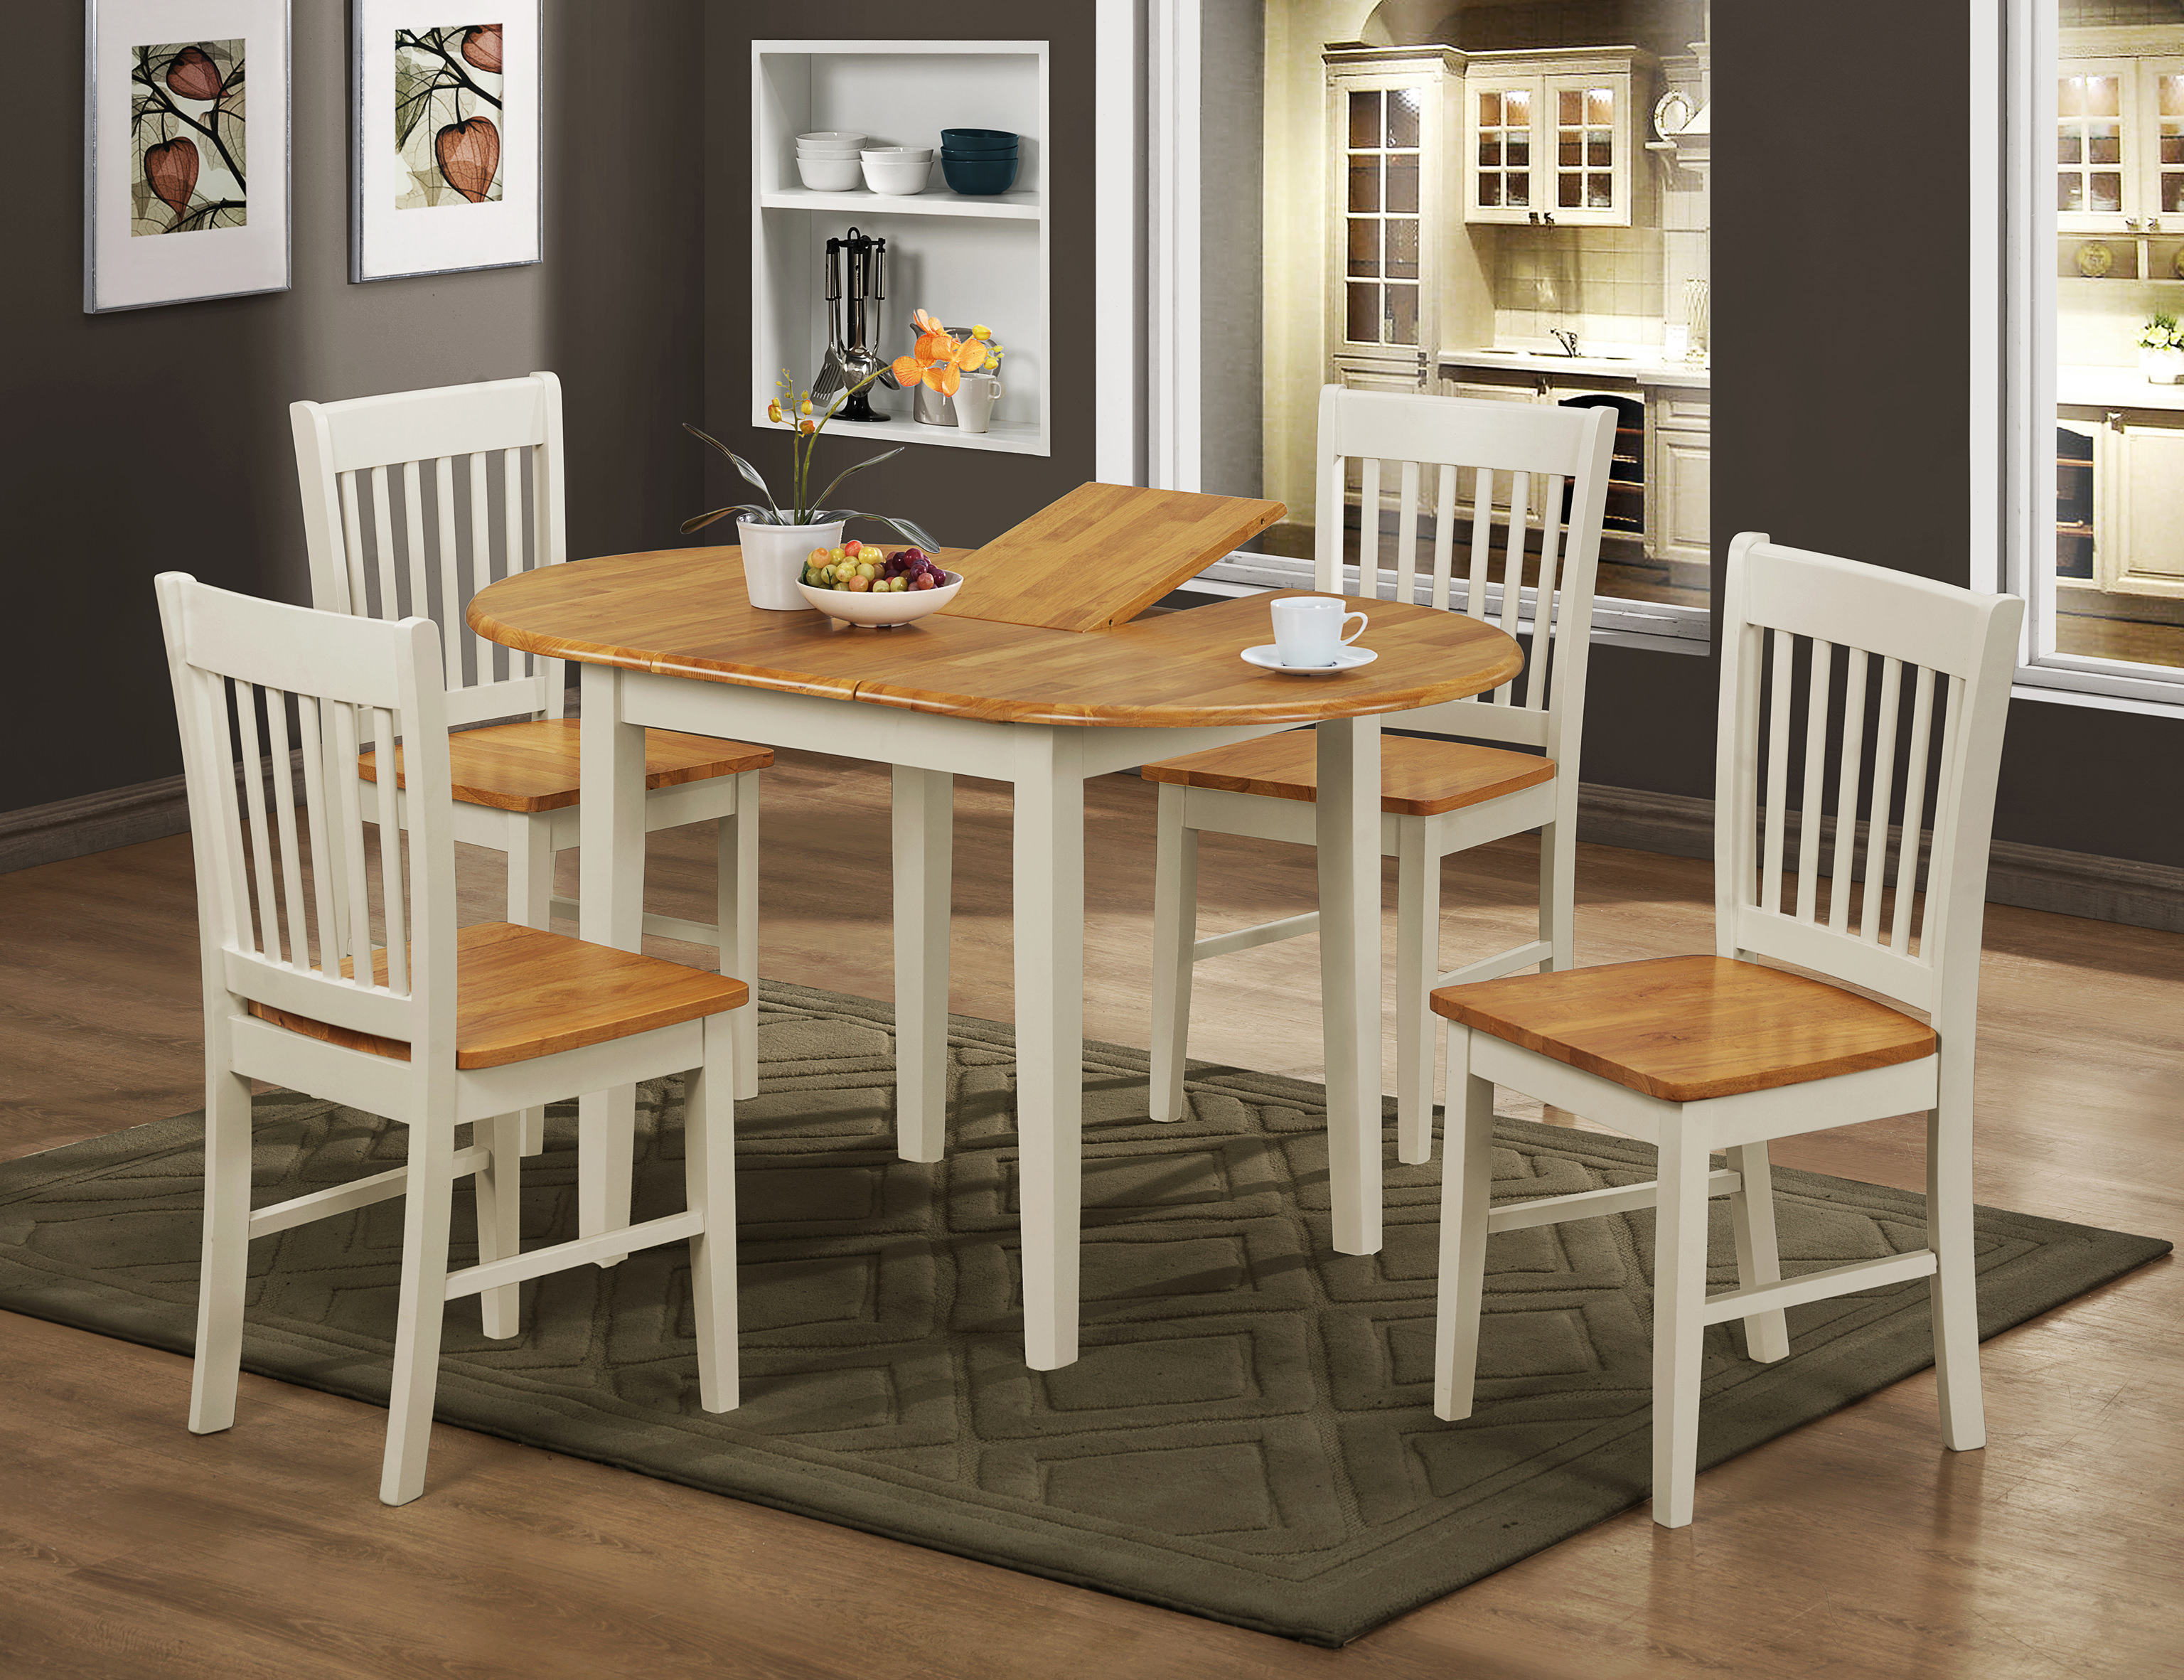 Oak & White Oval Extending Extendable Dining Table and ...